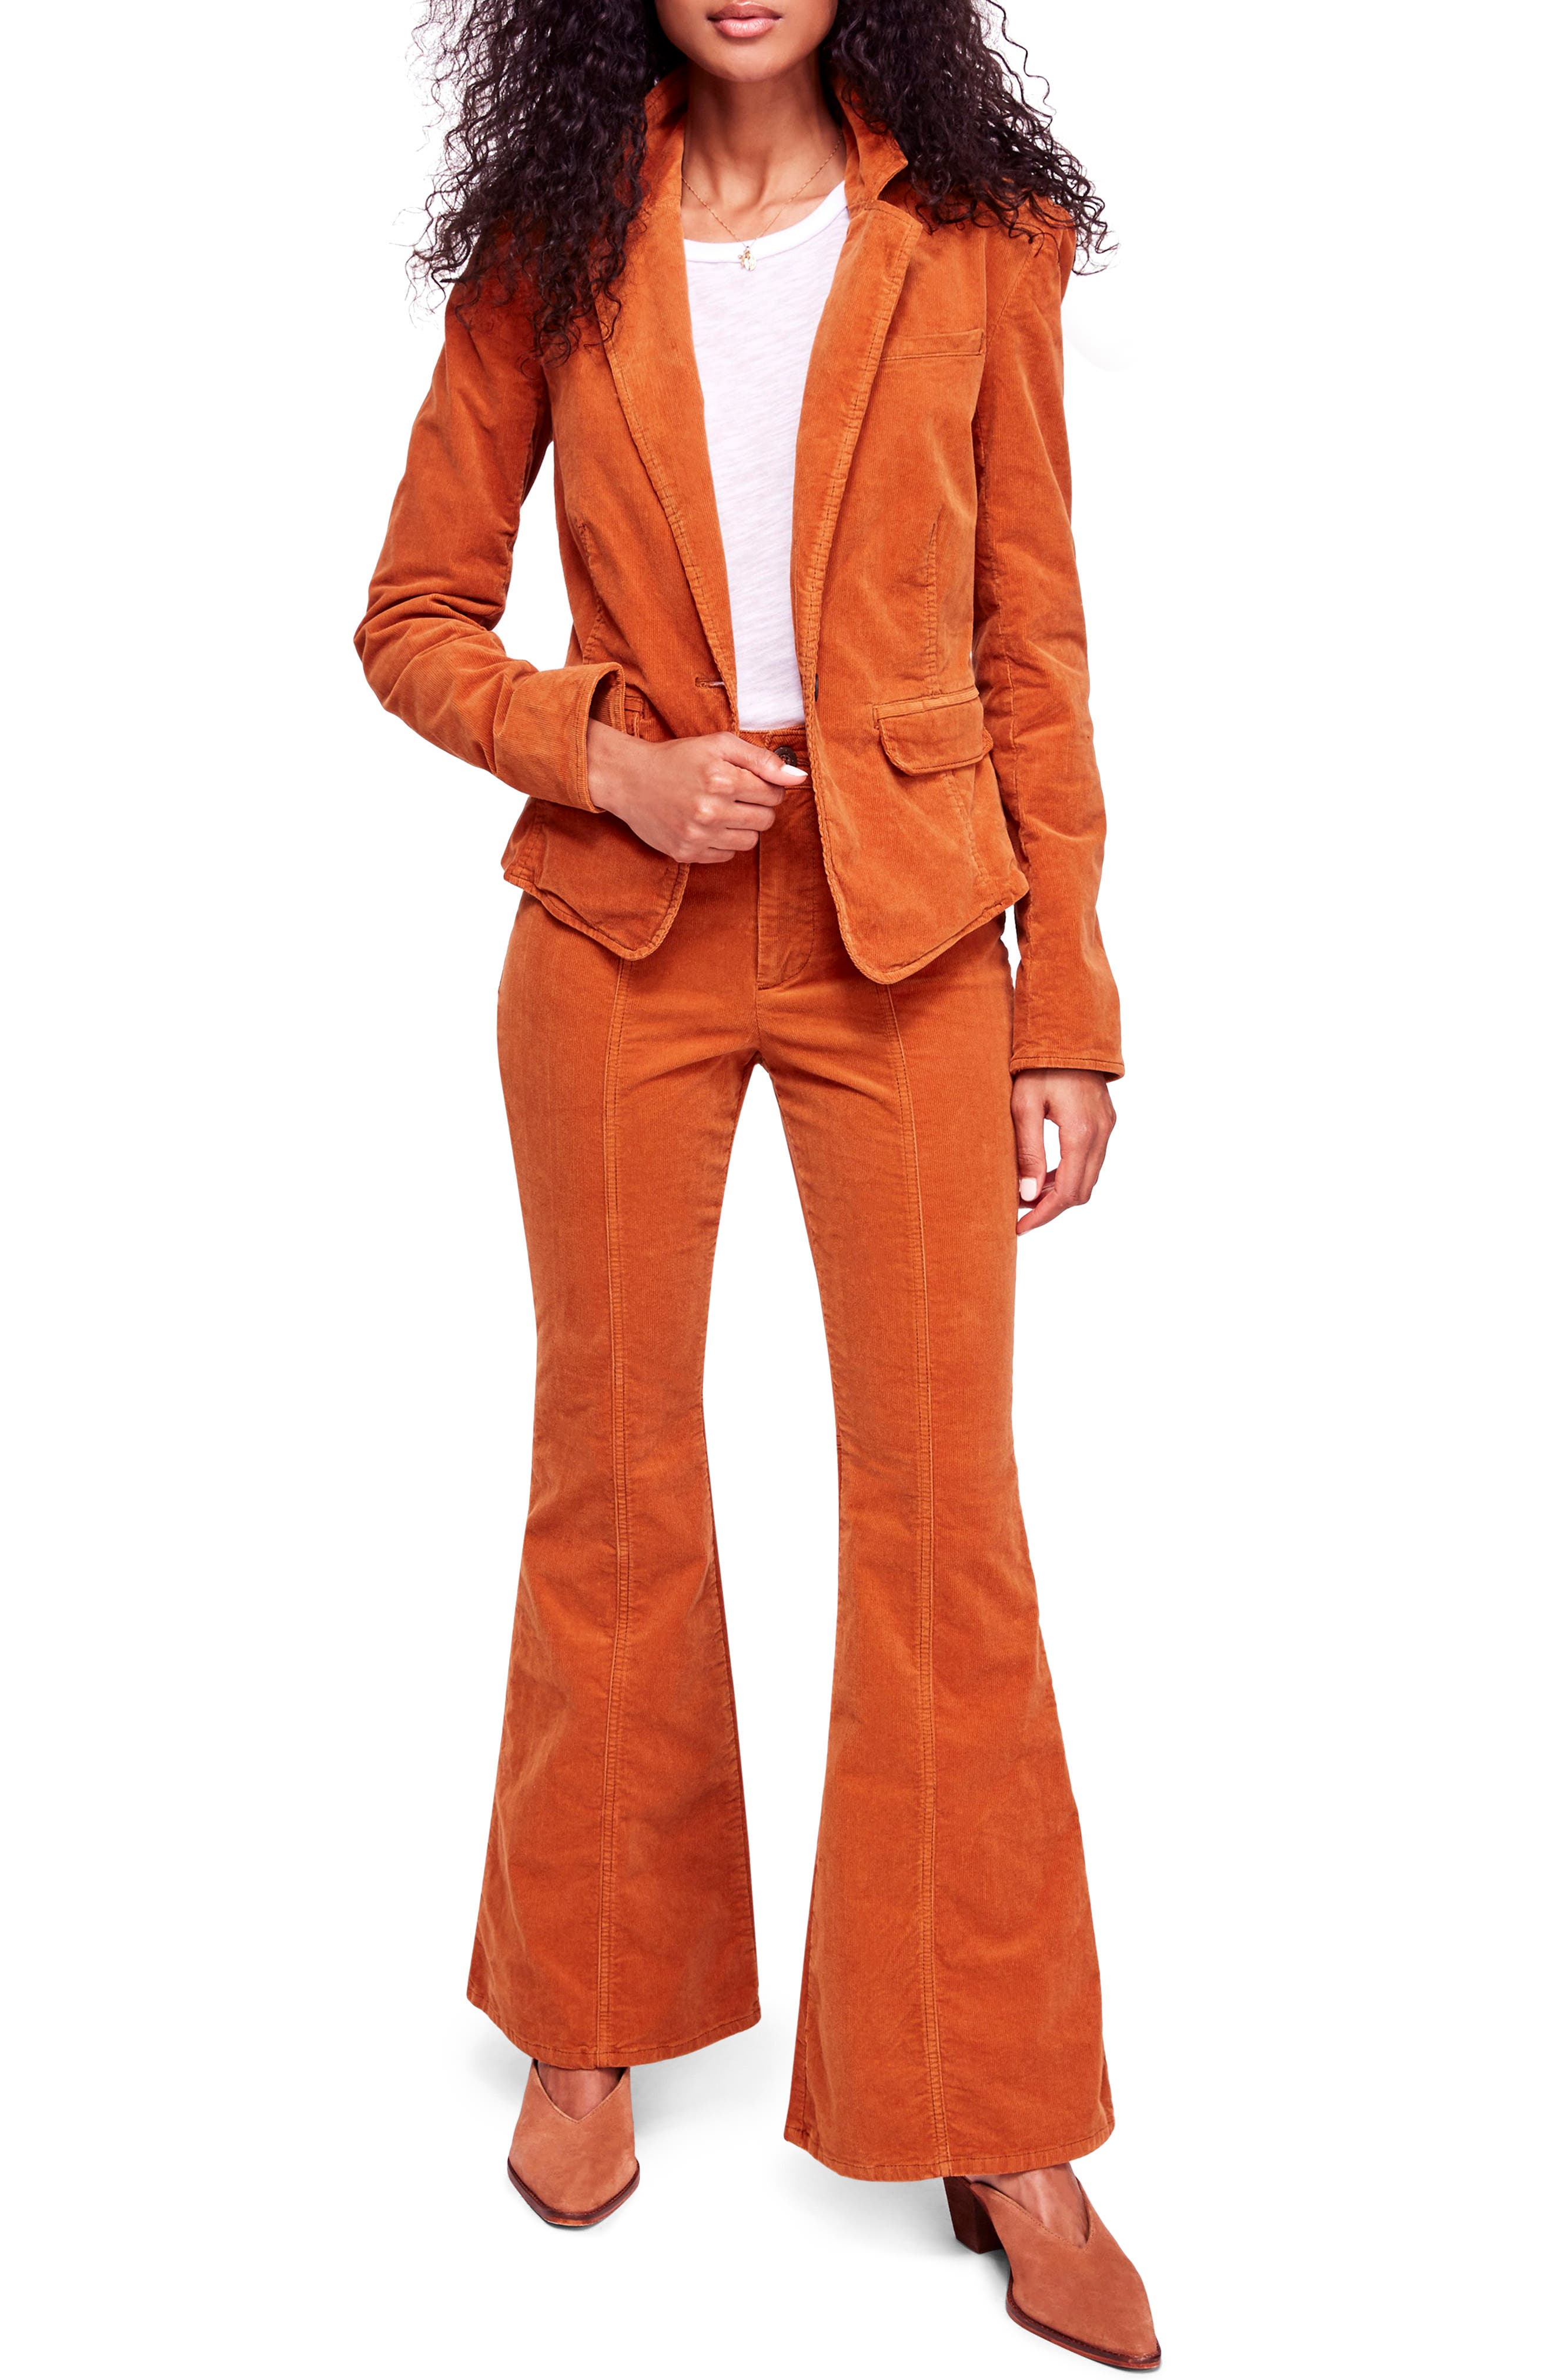 Vintage High Waisted Trousers, Sailor Pants, Jeans Womens Free People Heidi Two-Piece Cord Suit Size 4 - Brown $118.80 AT vintagedancer.com